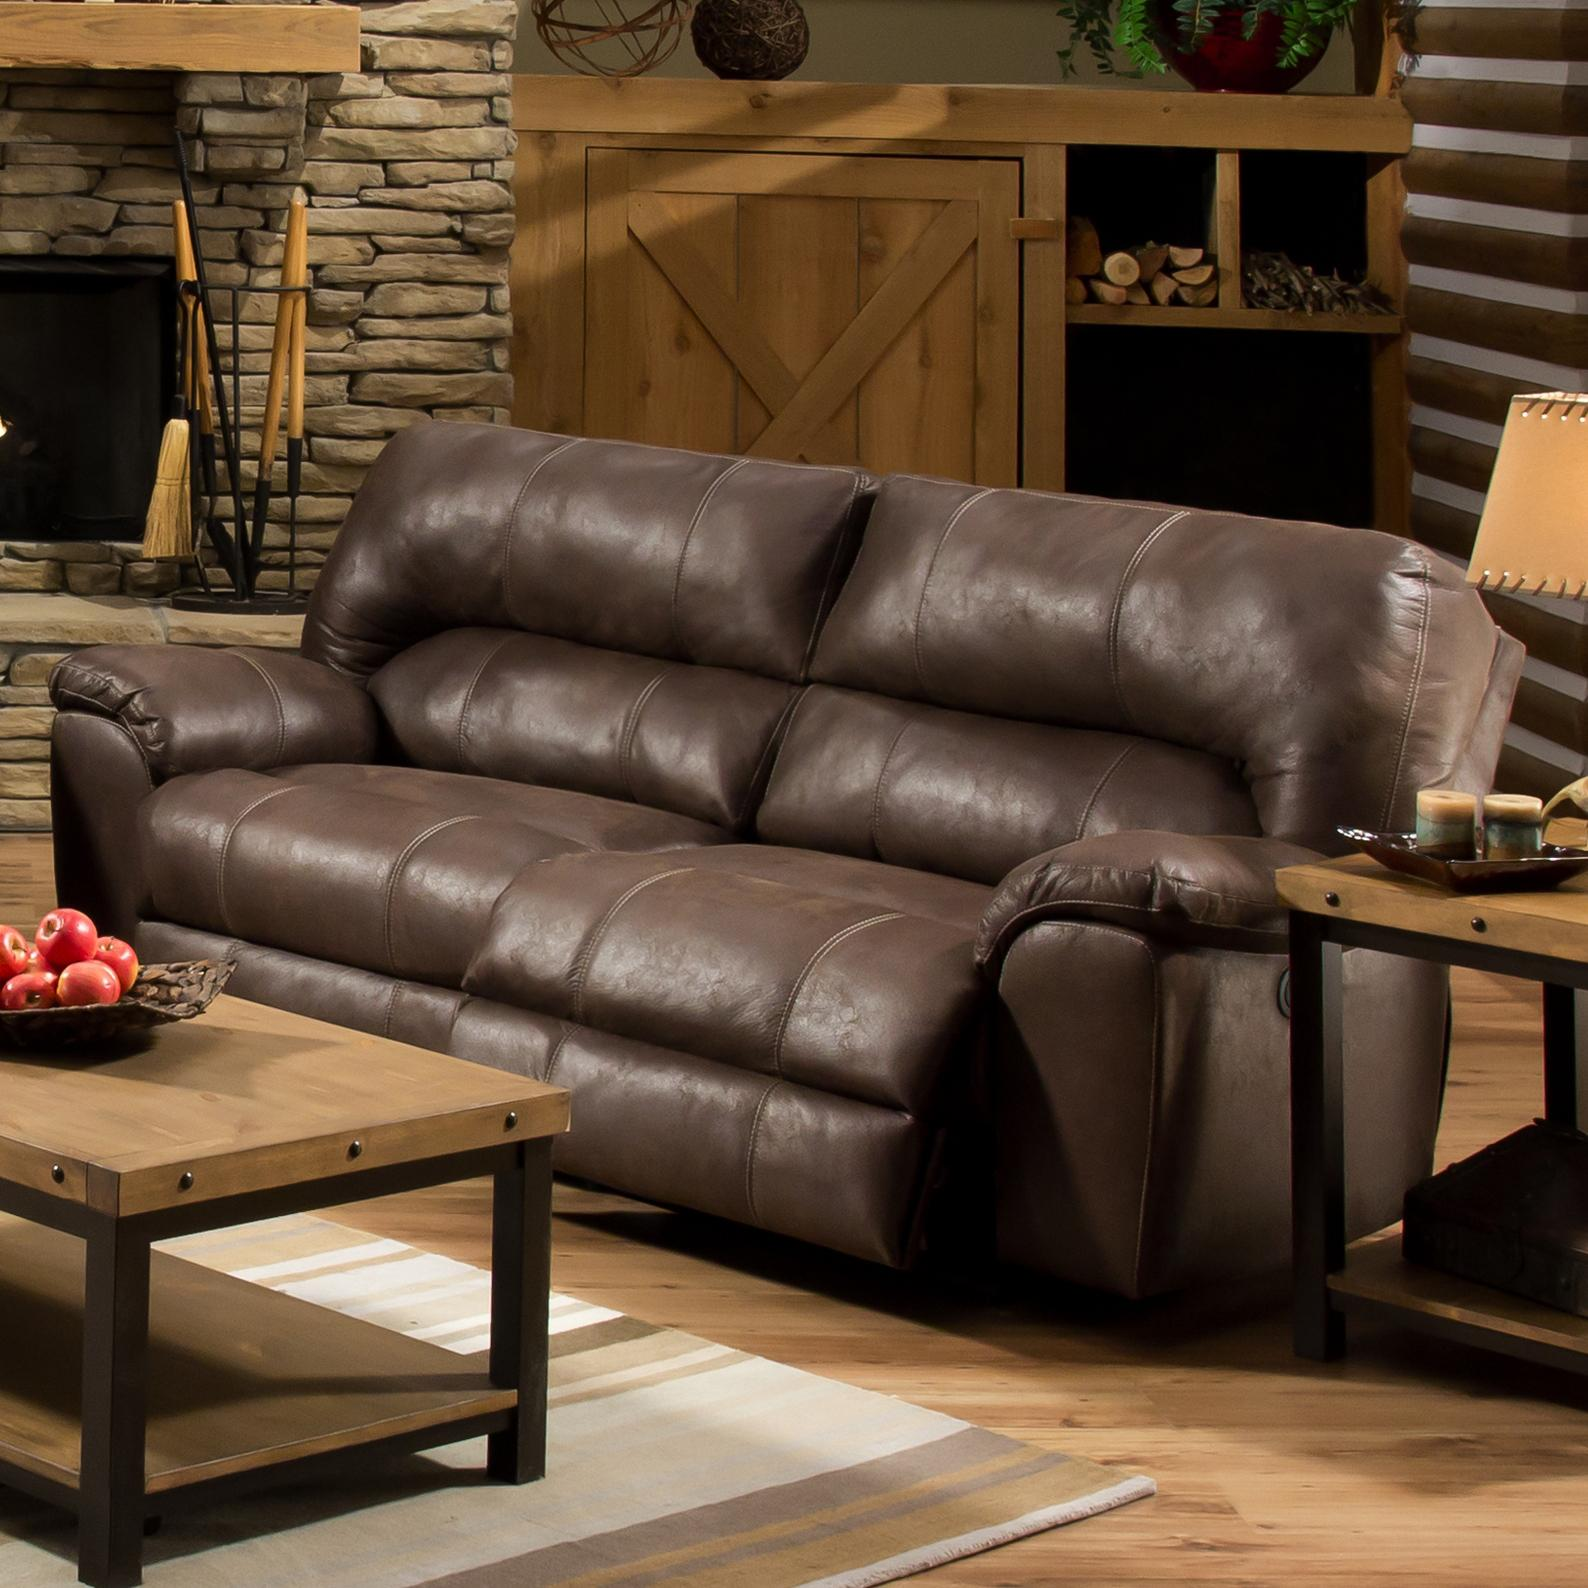 American Sofa Images Af740 Reclining Sofa With Headrest By American Furniture At Prime Brothers Furniture